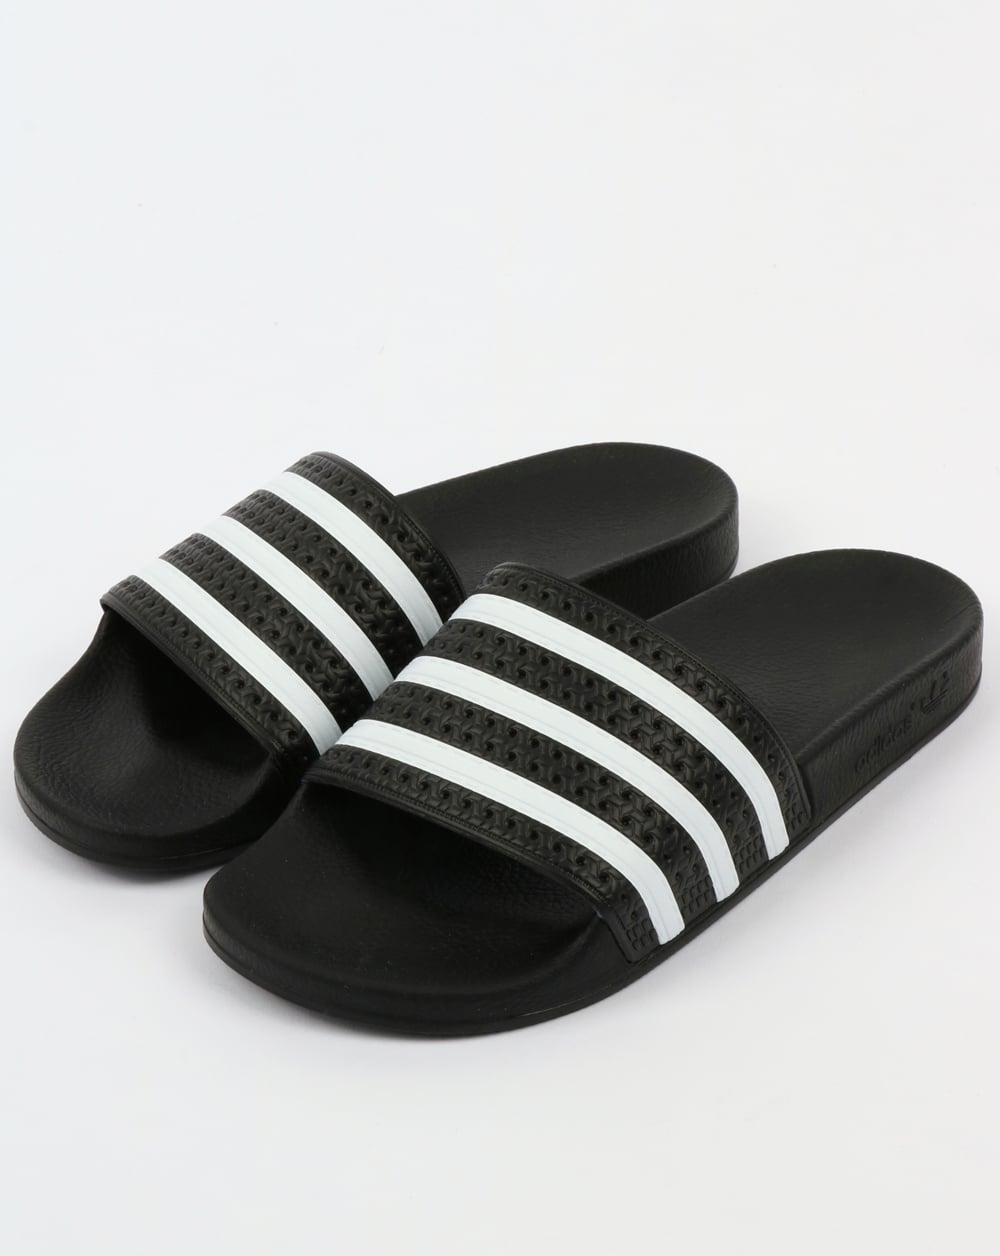 6fb2f7ac8c38 adidas Trainers Adidas Adilette Sliders Black White